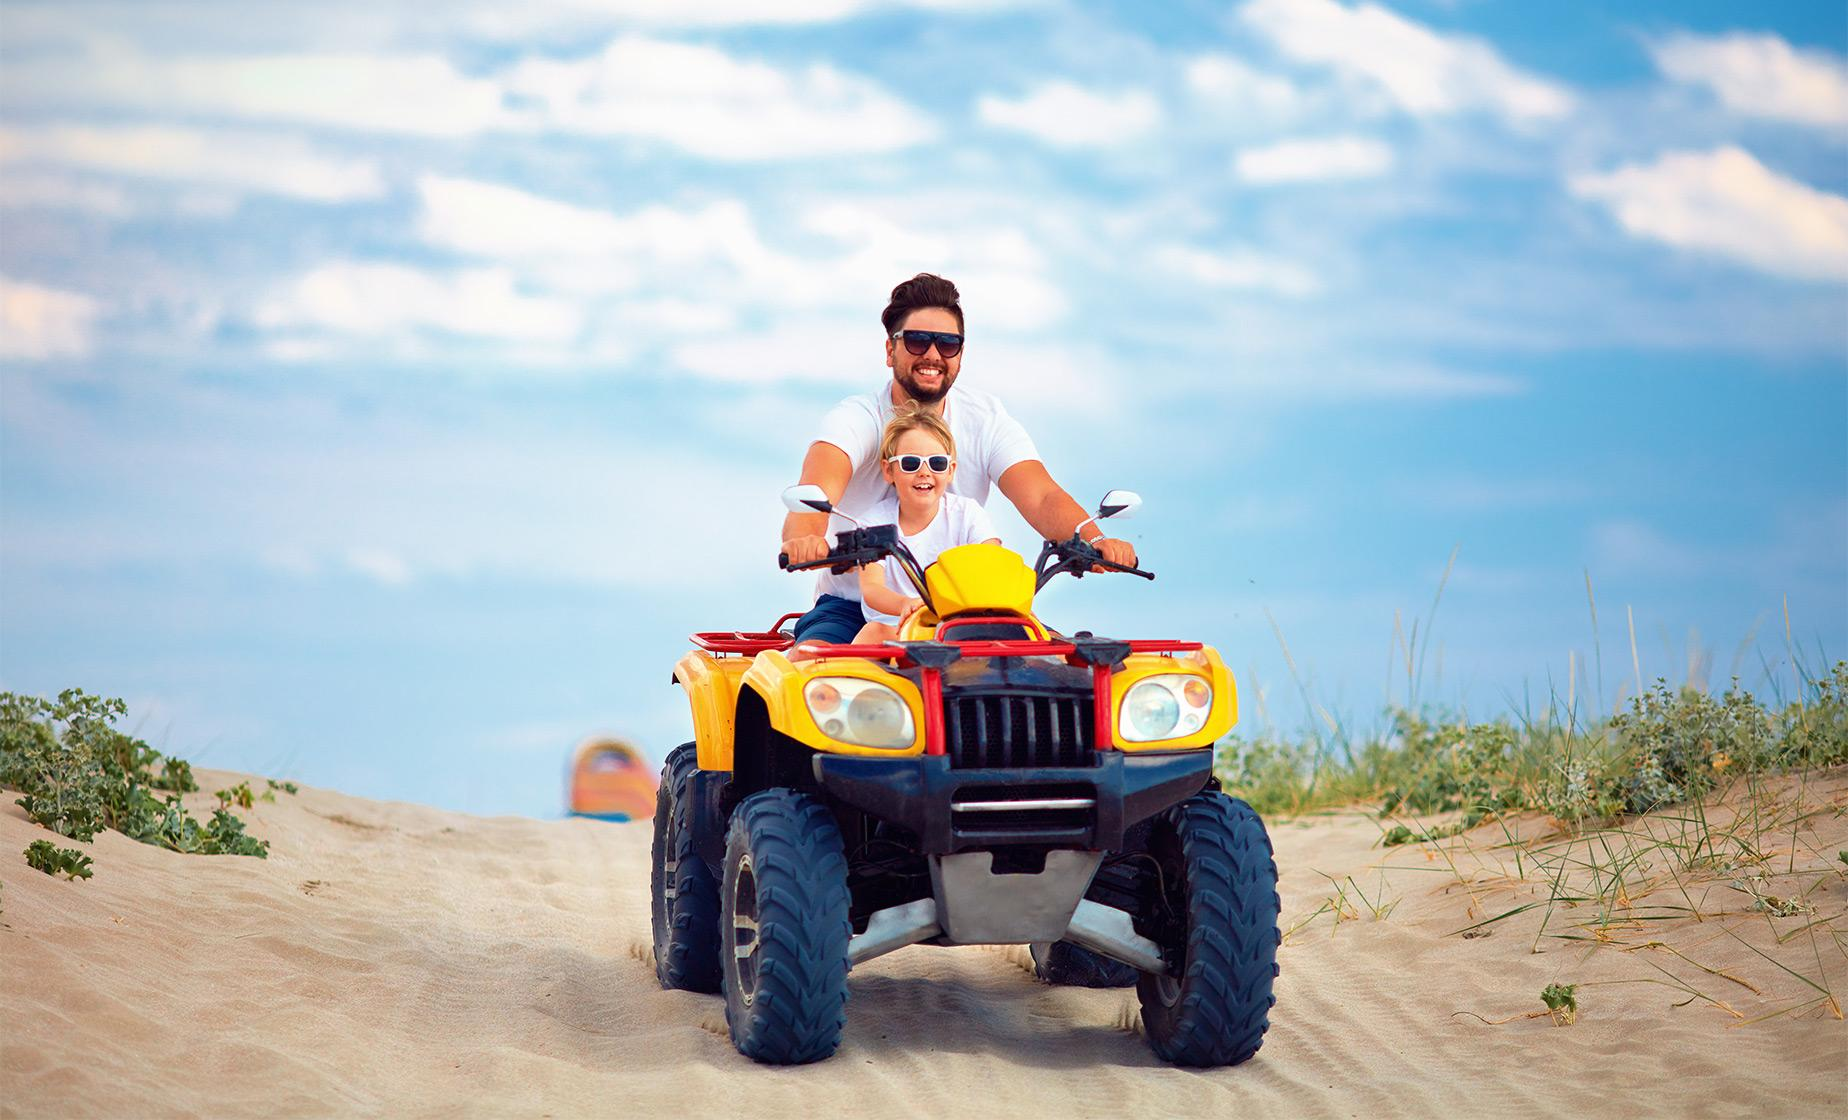 Migrino Beach ATV Adventure